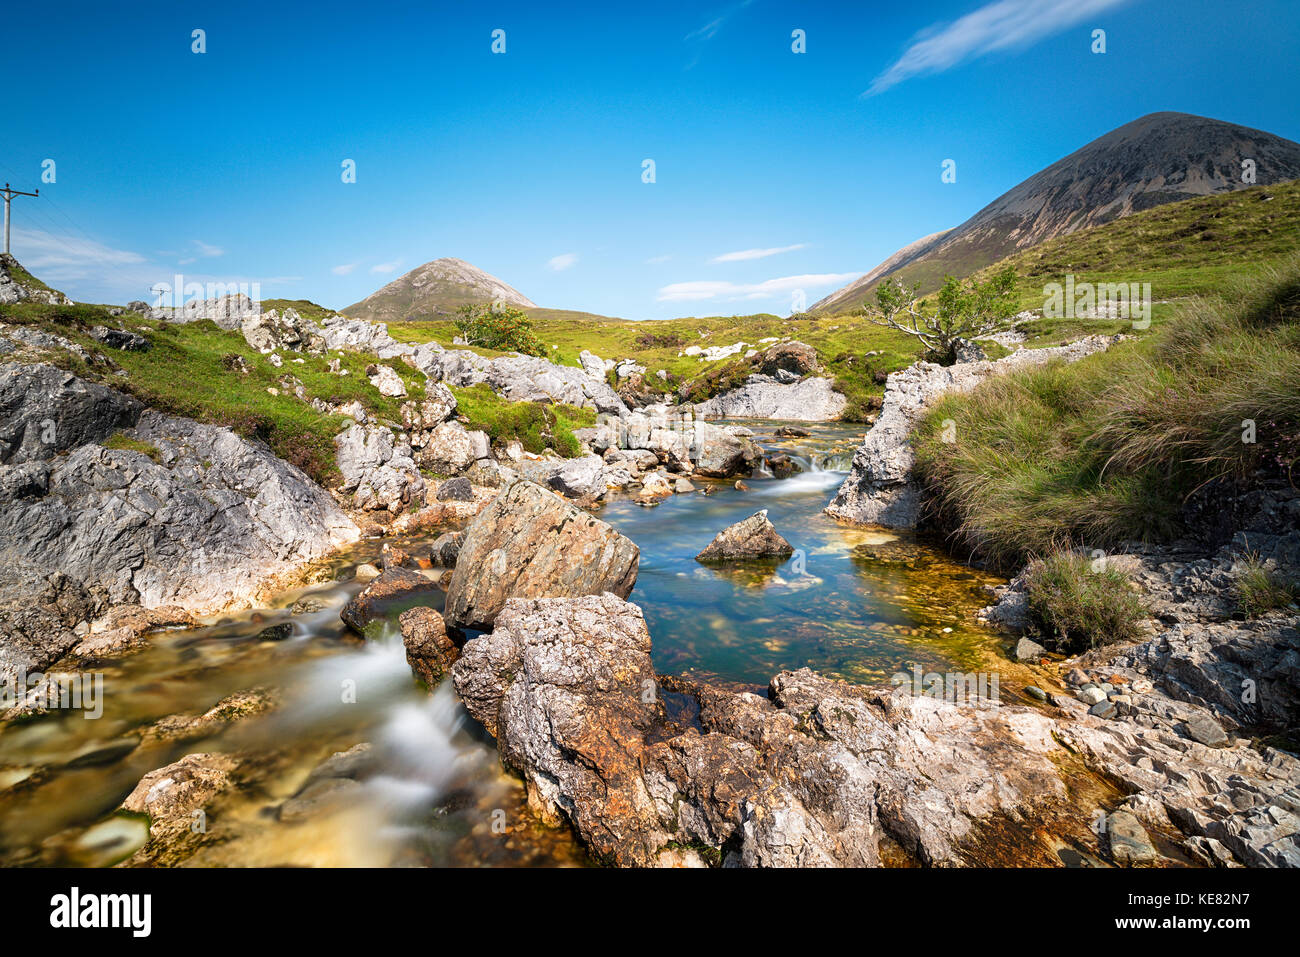 The Allt Aisridh, a mountain stream that flows in to Loch Saplin at Torrin on the Isle of Skye in Scotland - Stock Image